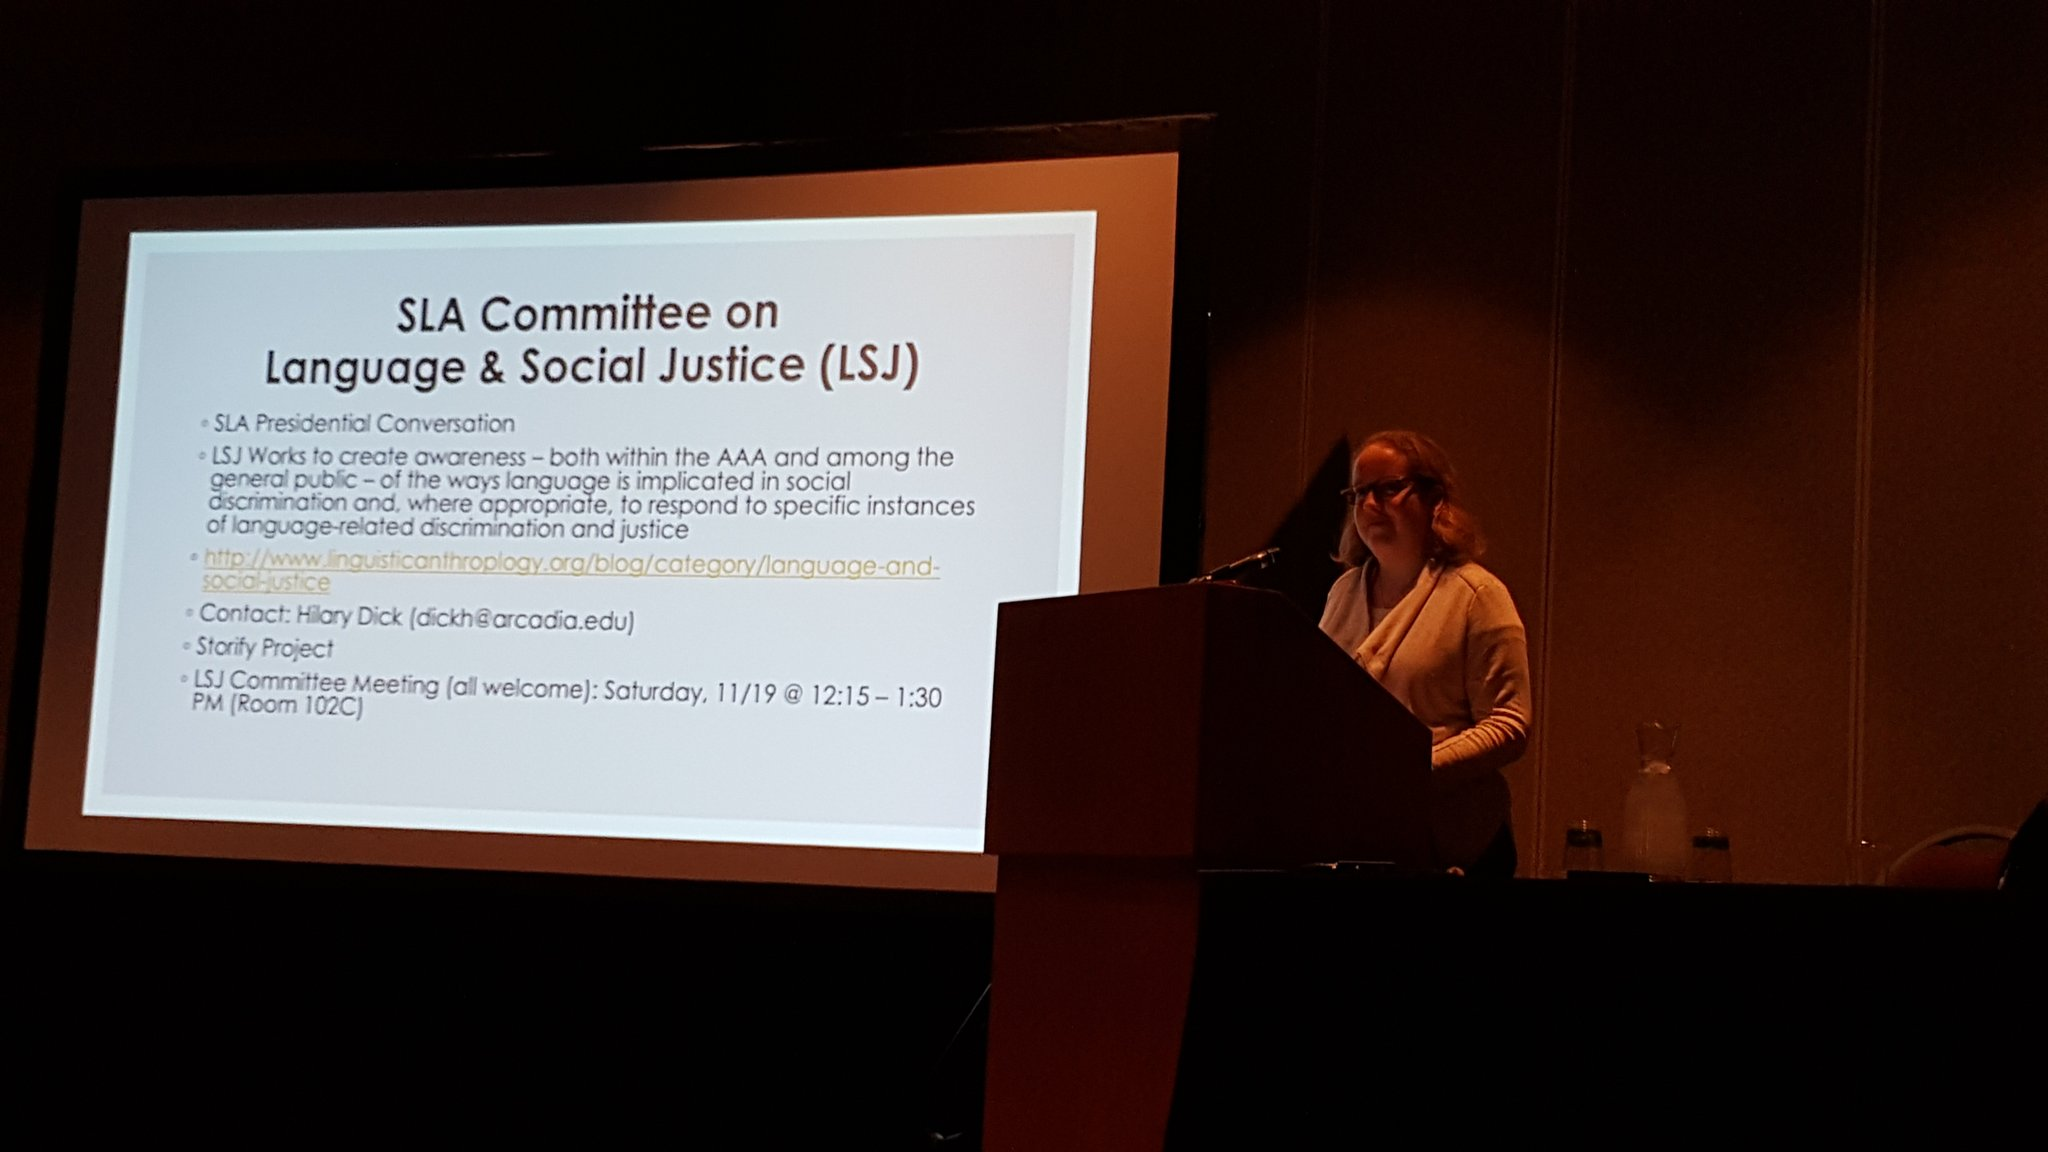 Language and social justice conversation at the AAA. #LSJ2016 #amanth2016 https://t.co/pnD3S7PvOW